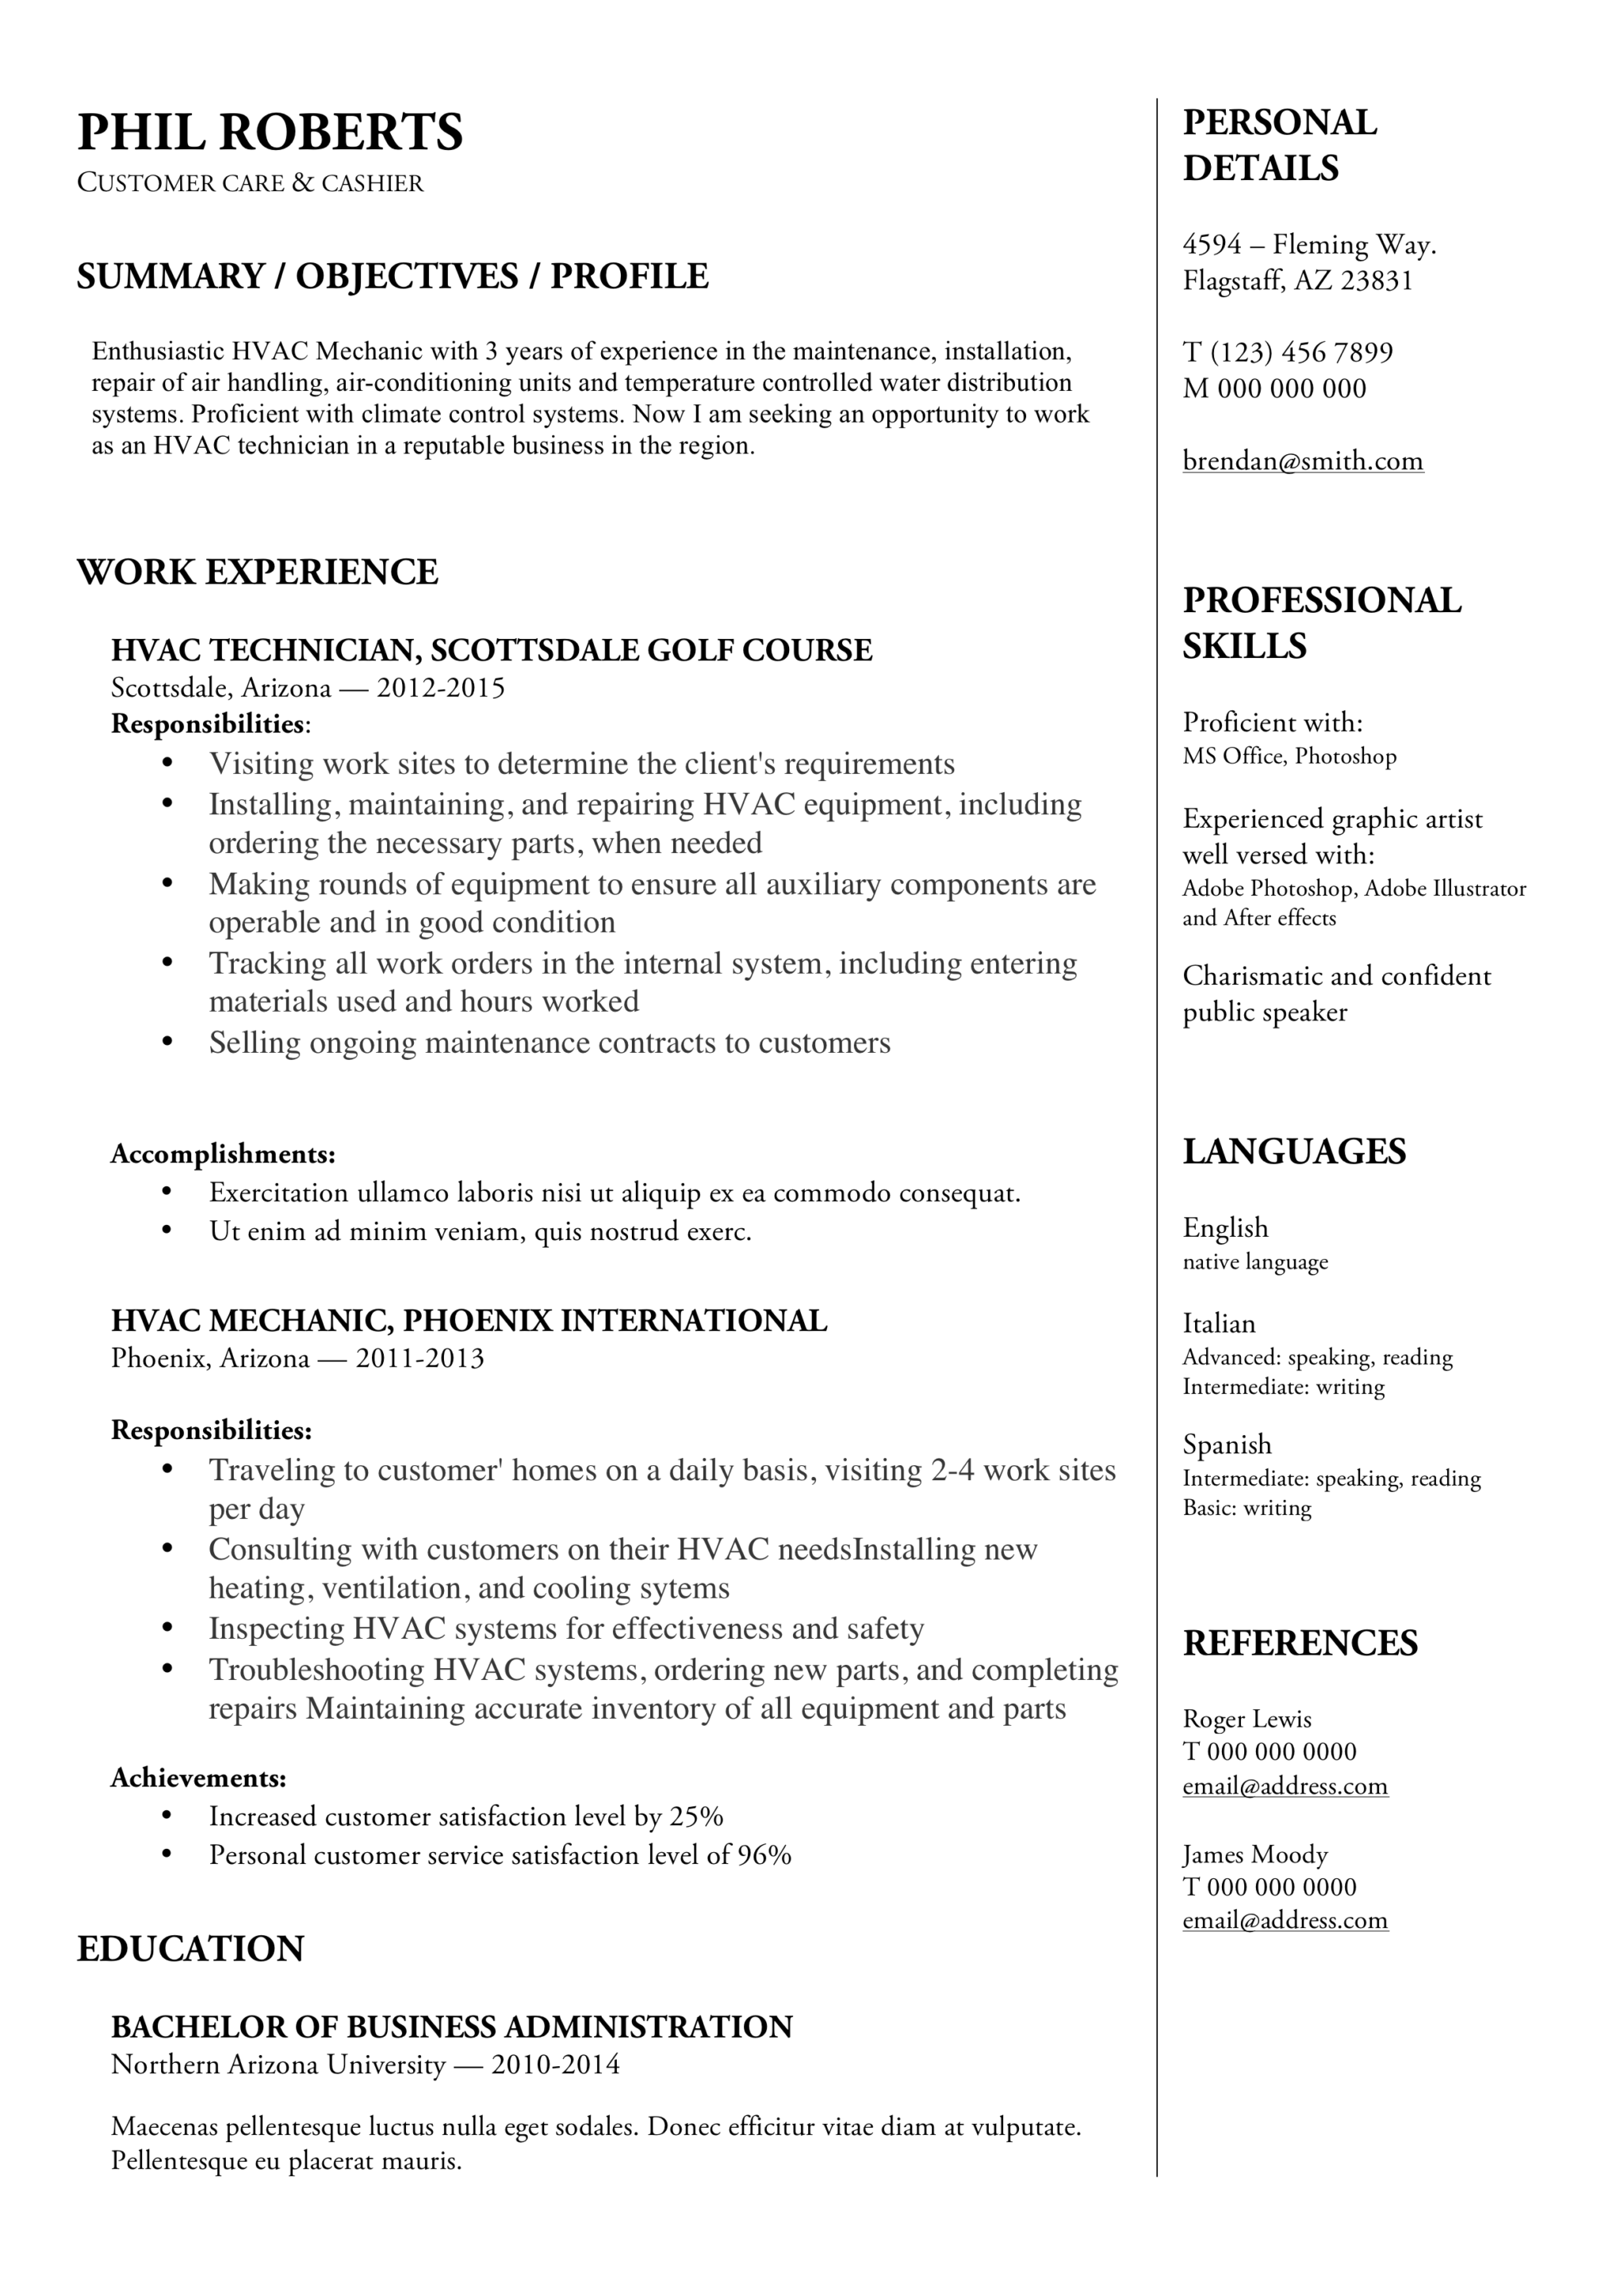 MS Word Resume HVAC Technician example